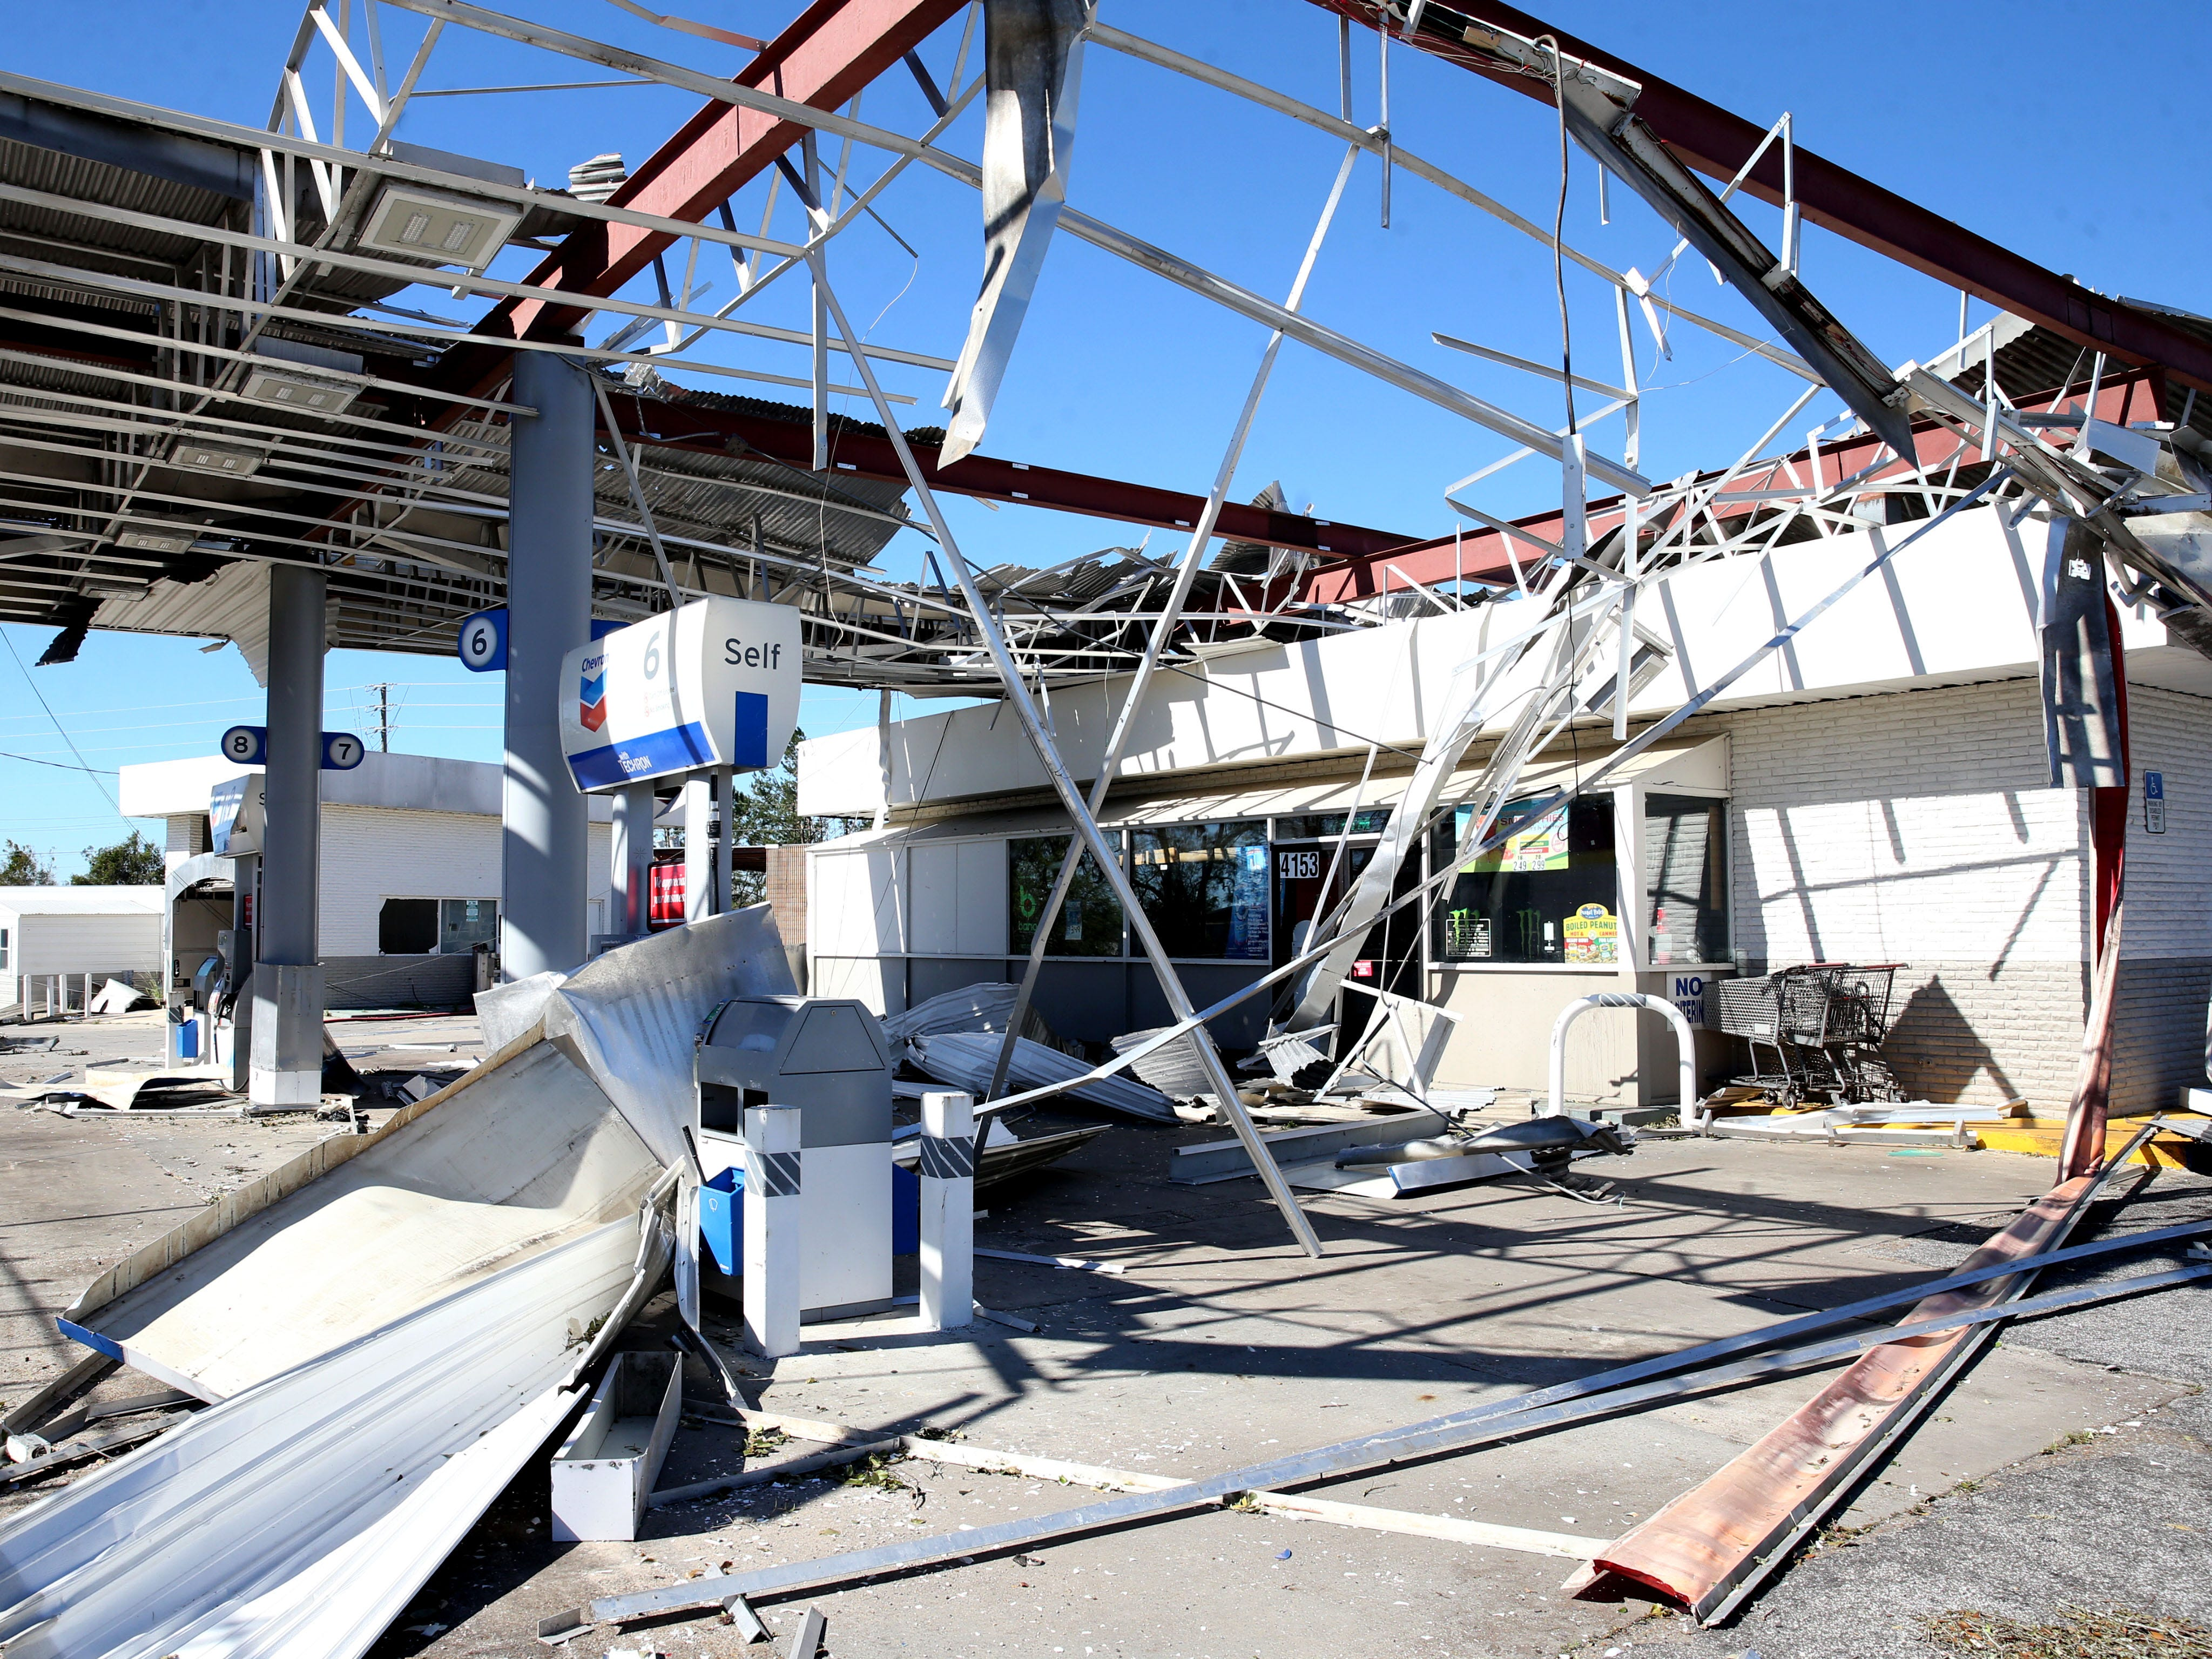 At the Big Little gas station in Marianna, Fla. on Friday, Oct. 12, 2018, the station was torn to shreds after Hurricane Michael rips through the panhandle.